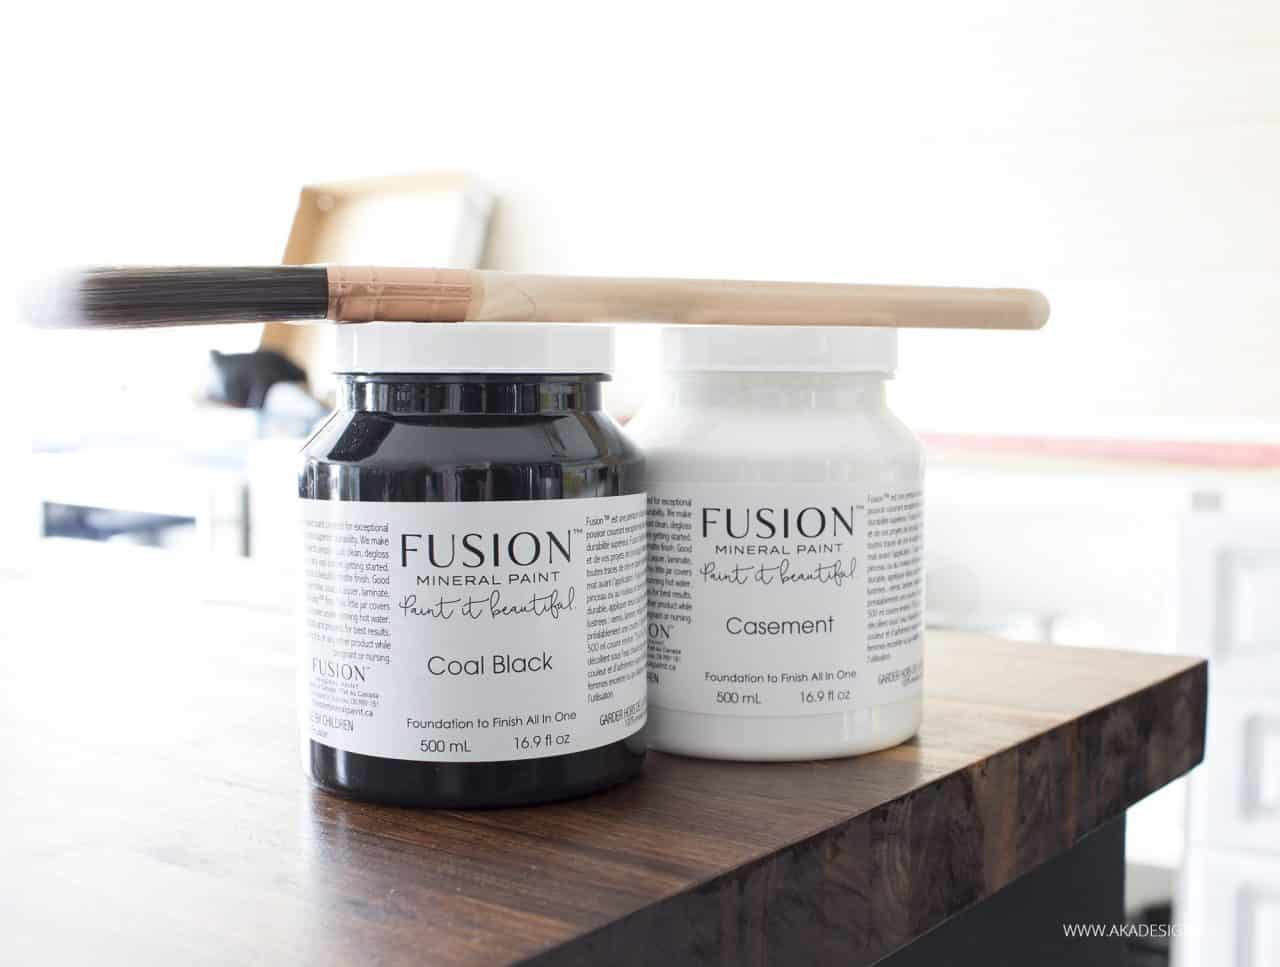 Fusion Mineral Paint Coal Black and Casement